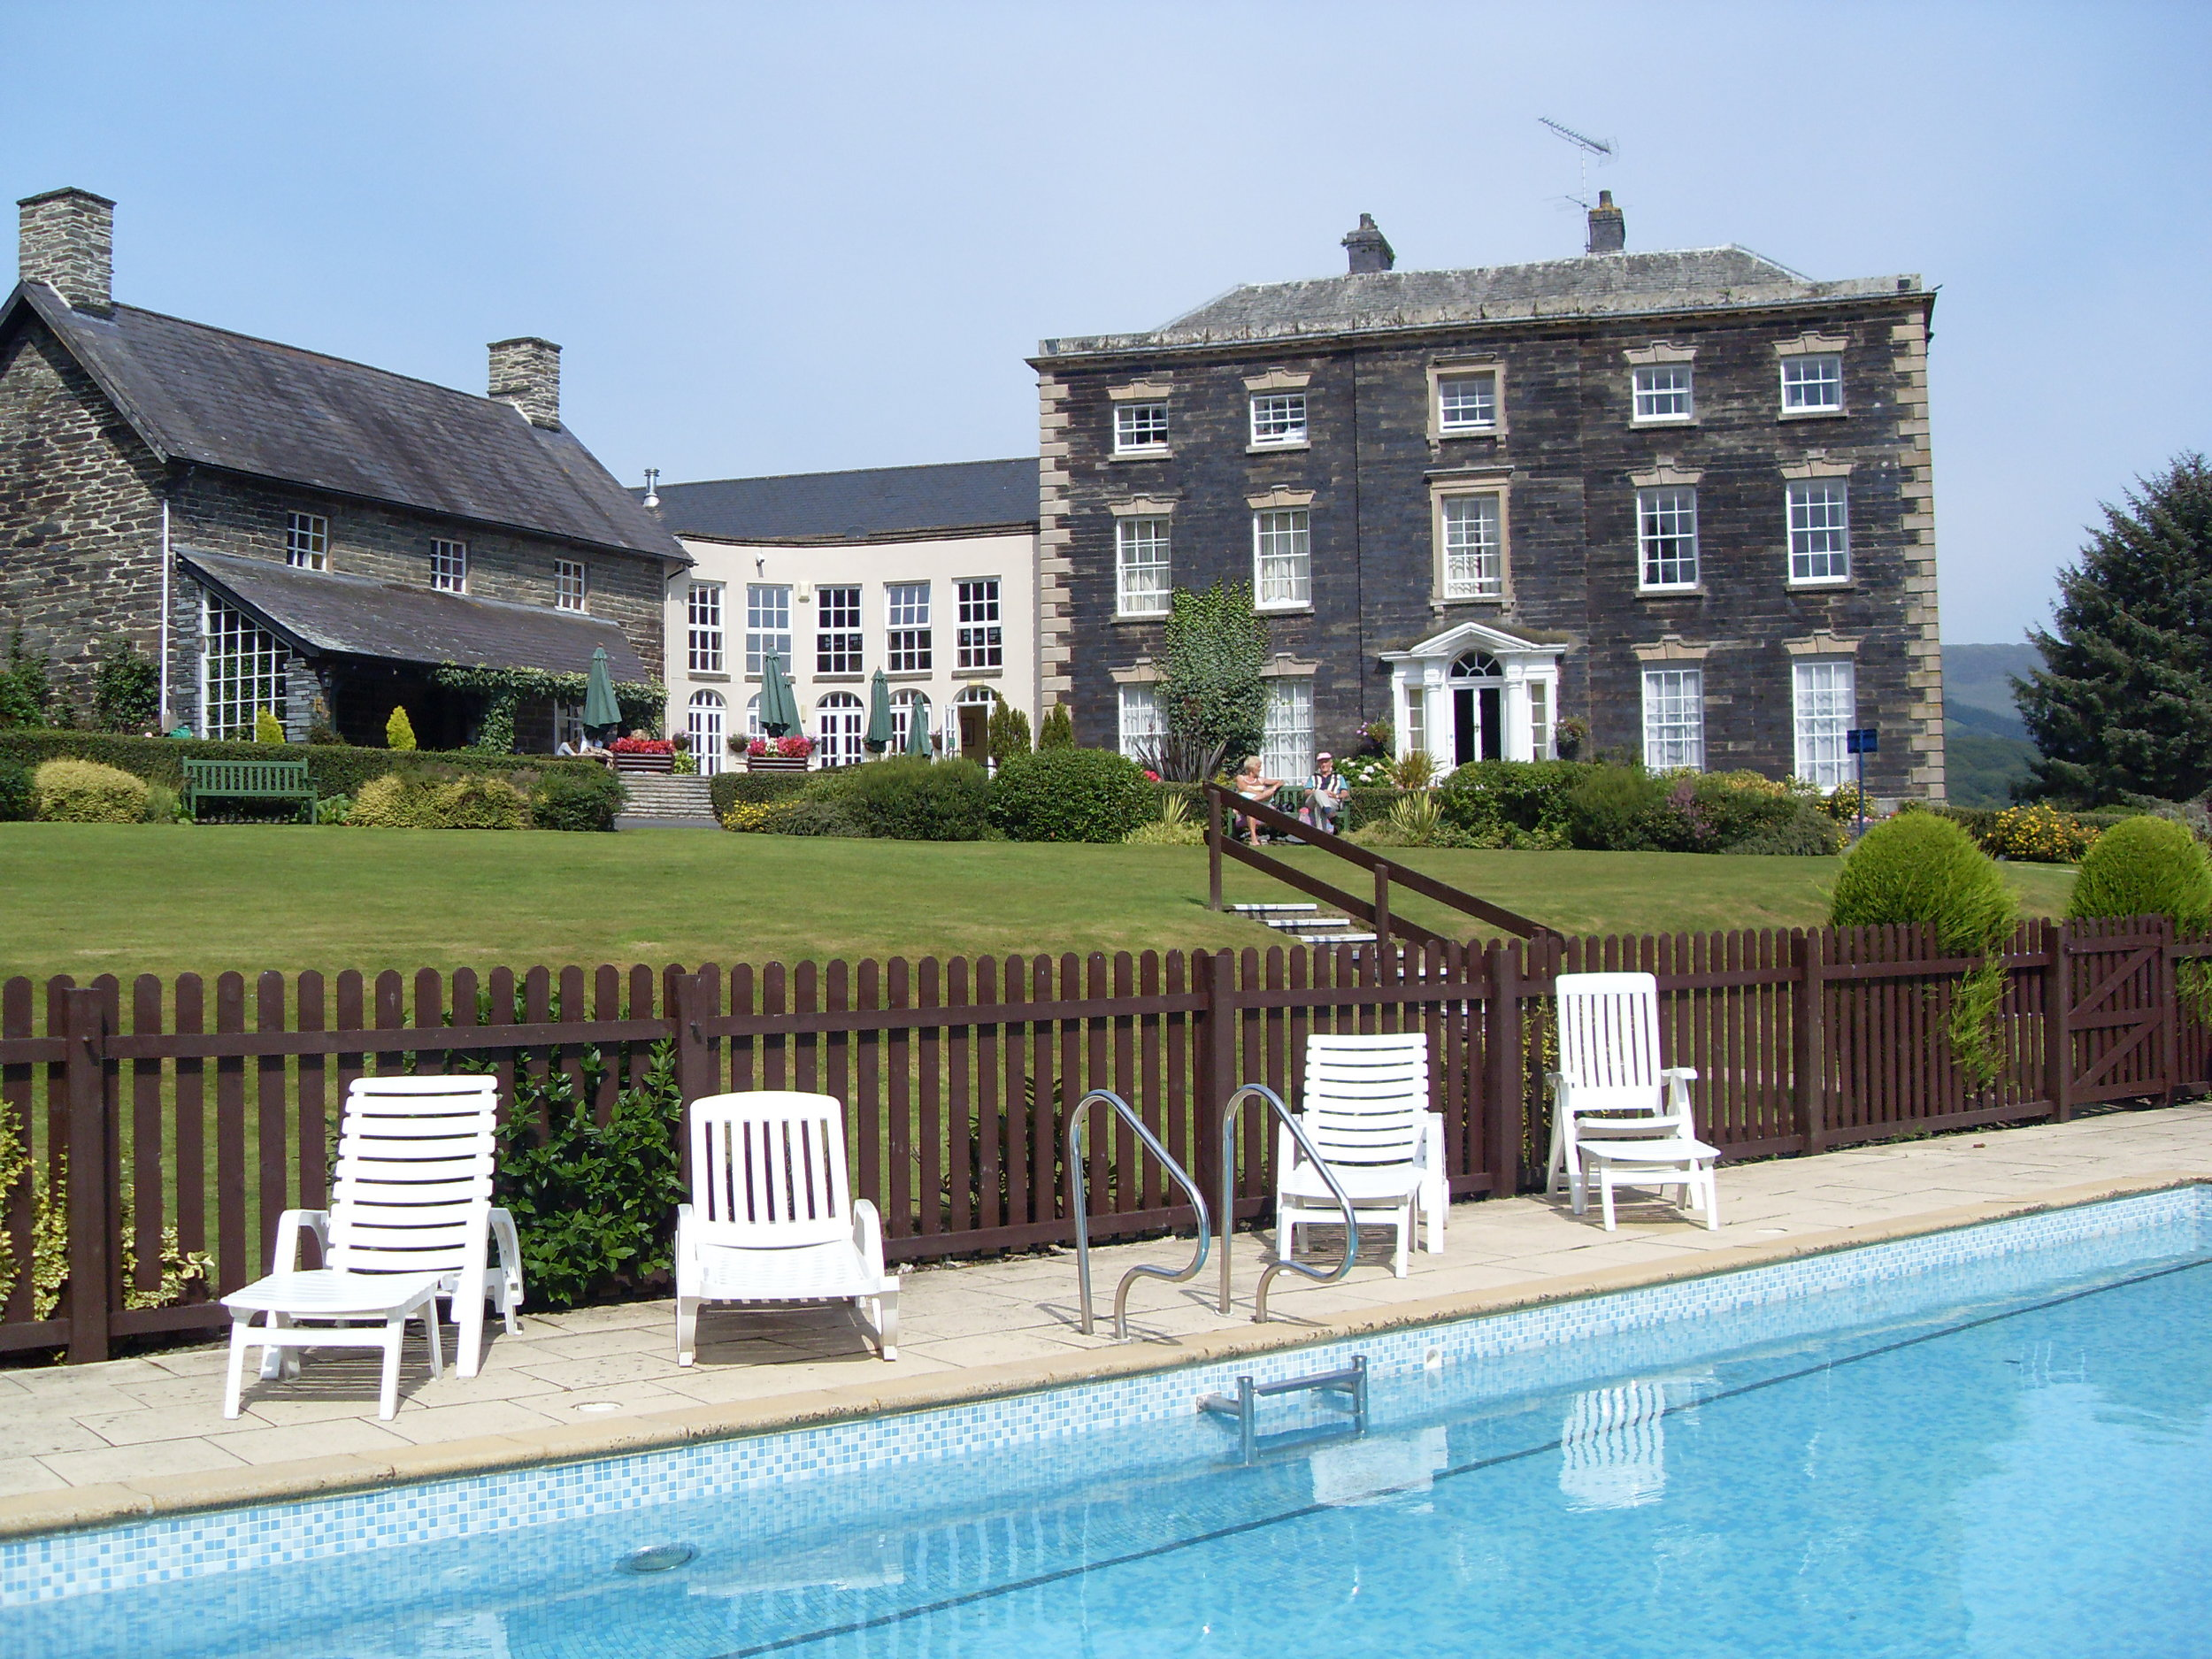 Plas Talgarth Outdoor Pool.JPG